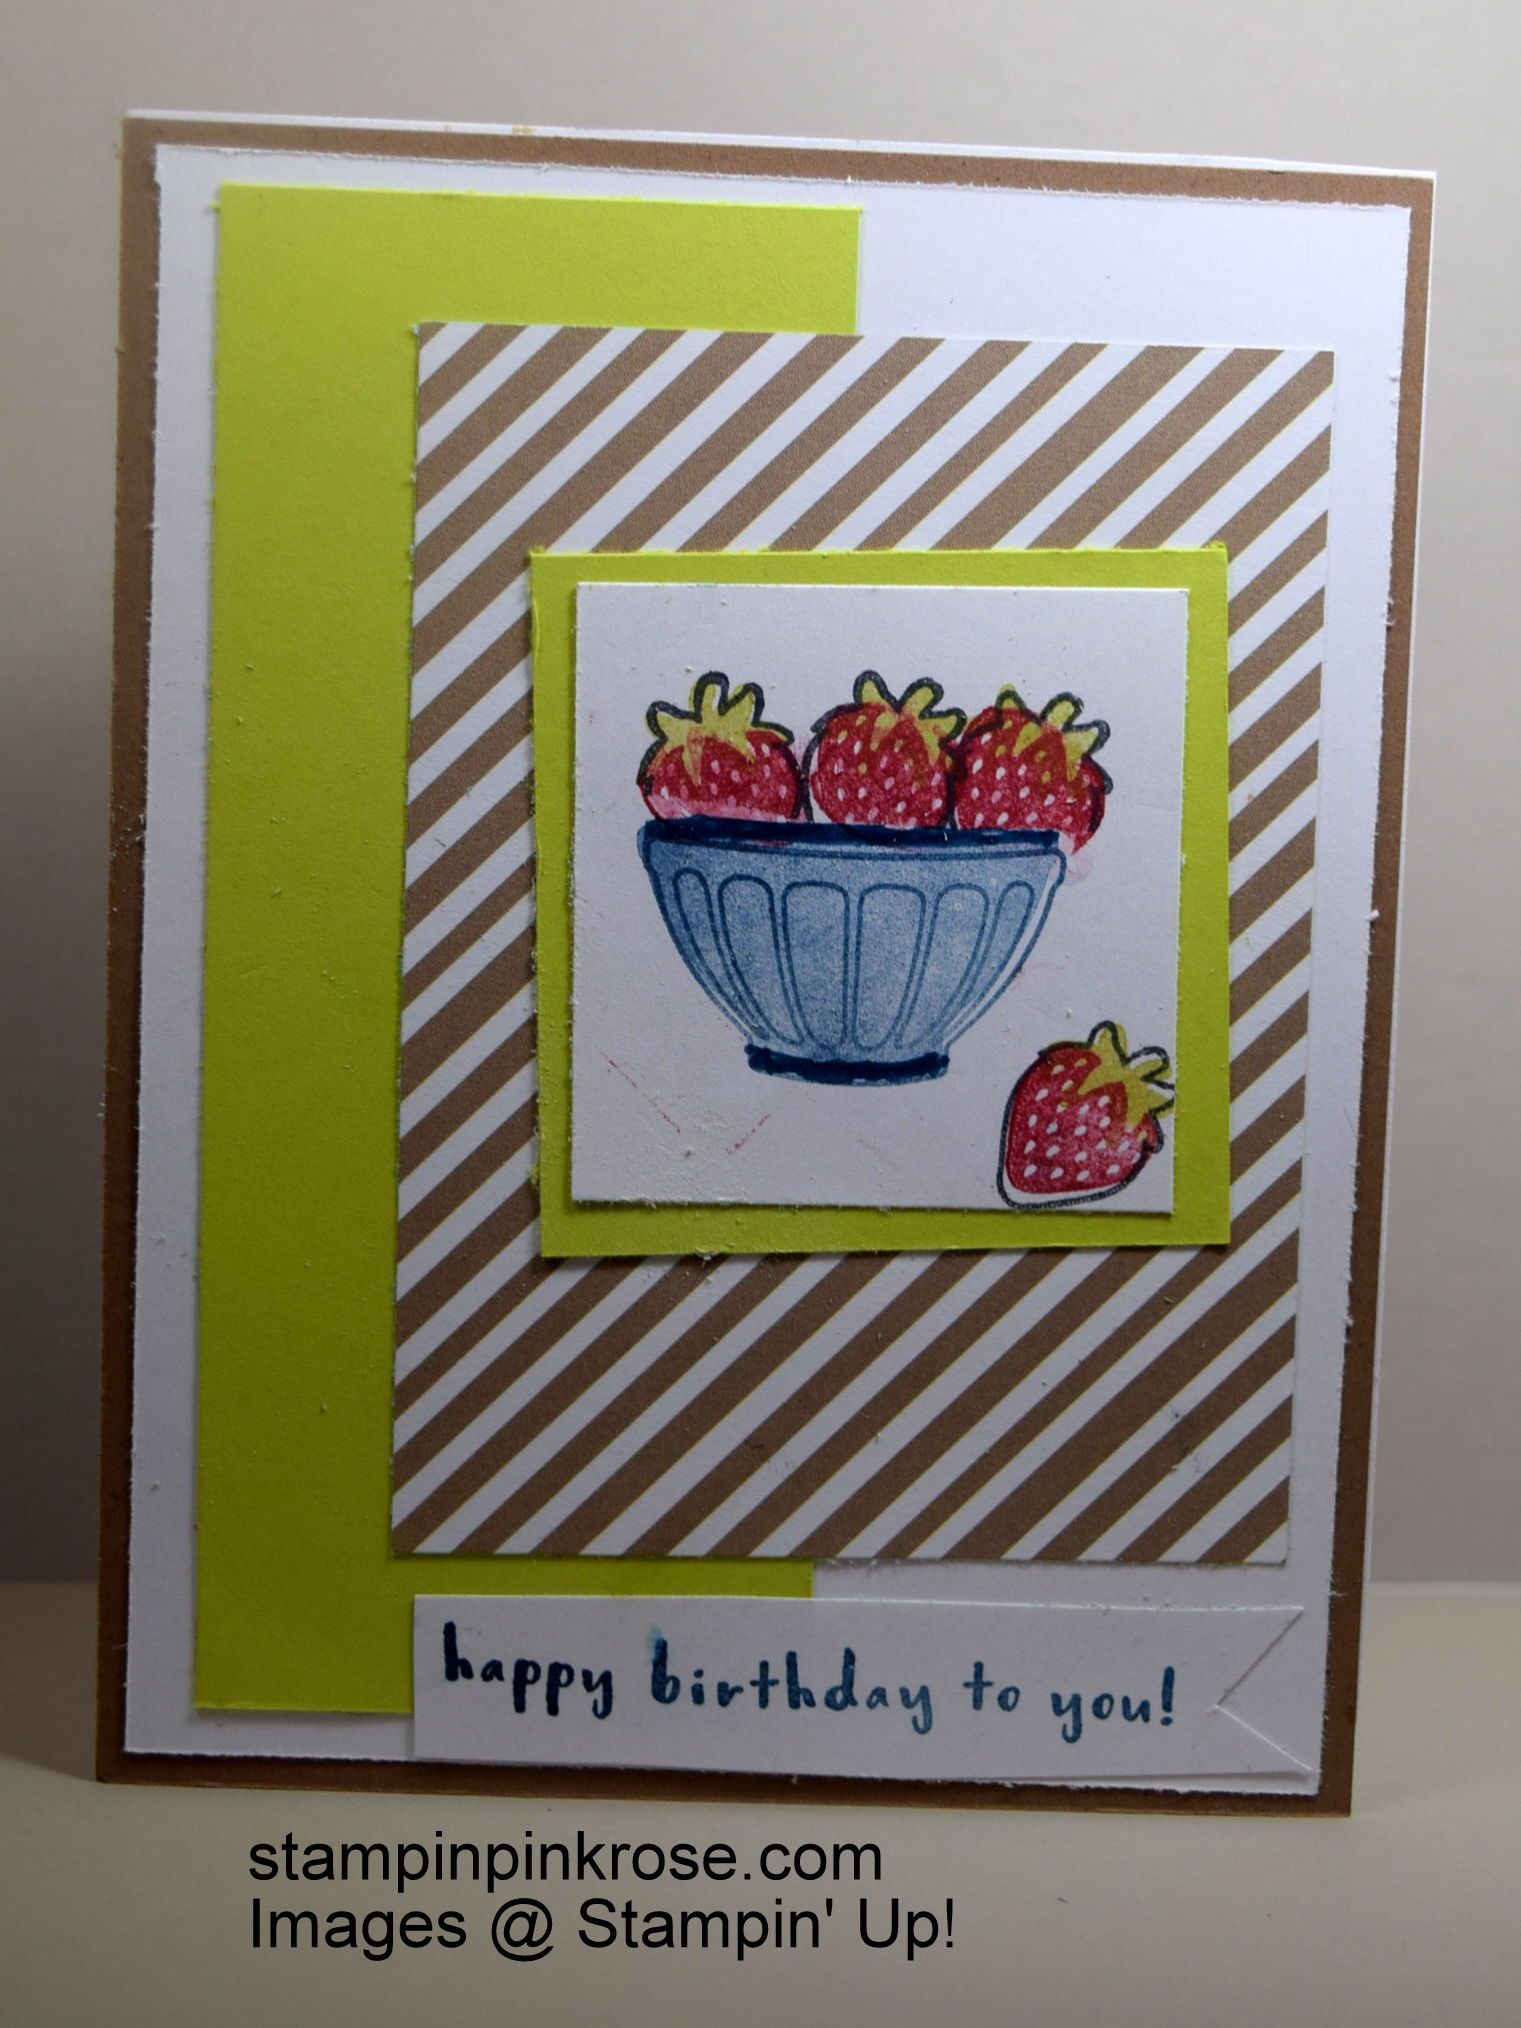 Stampinu up birthday card made with fruit bowl stamp set and